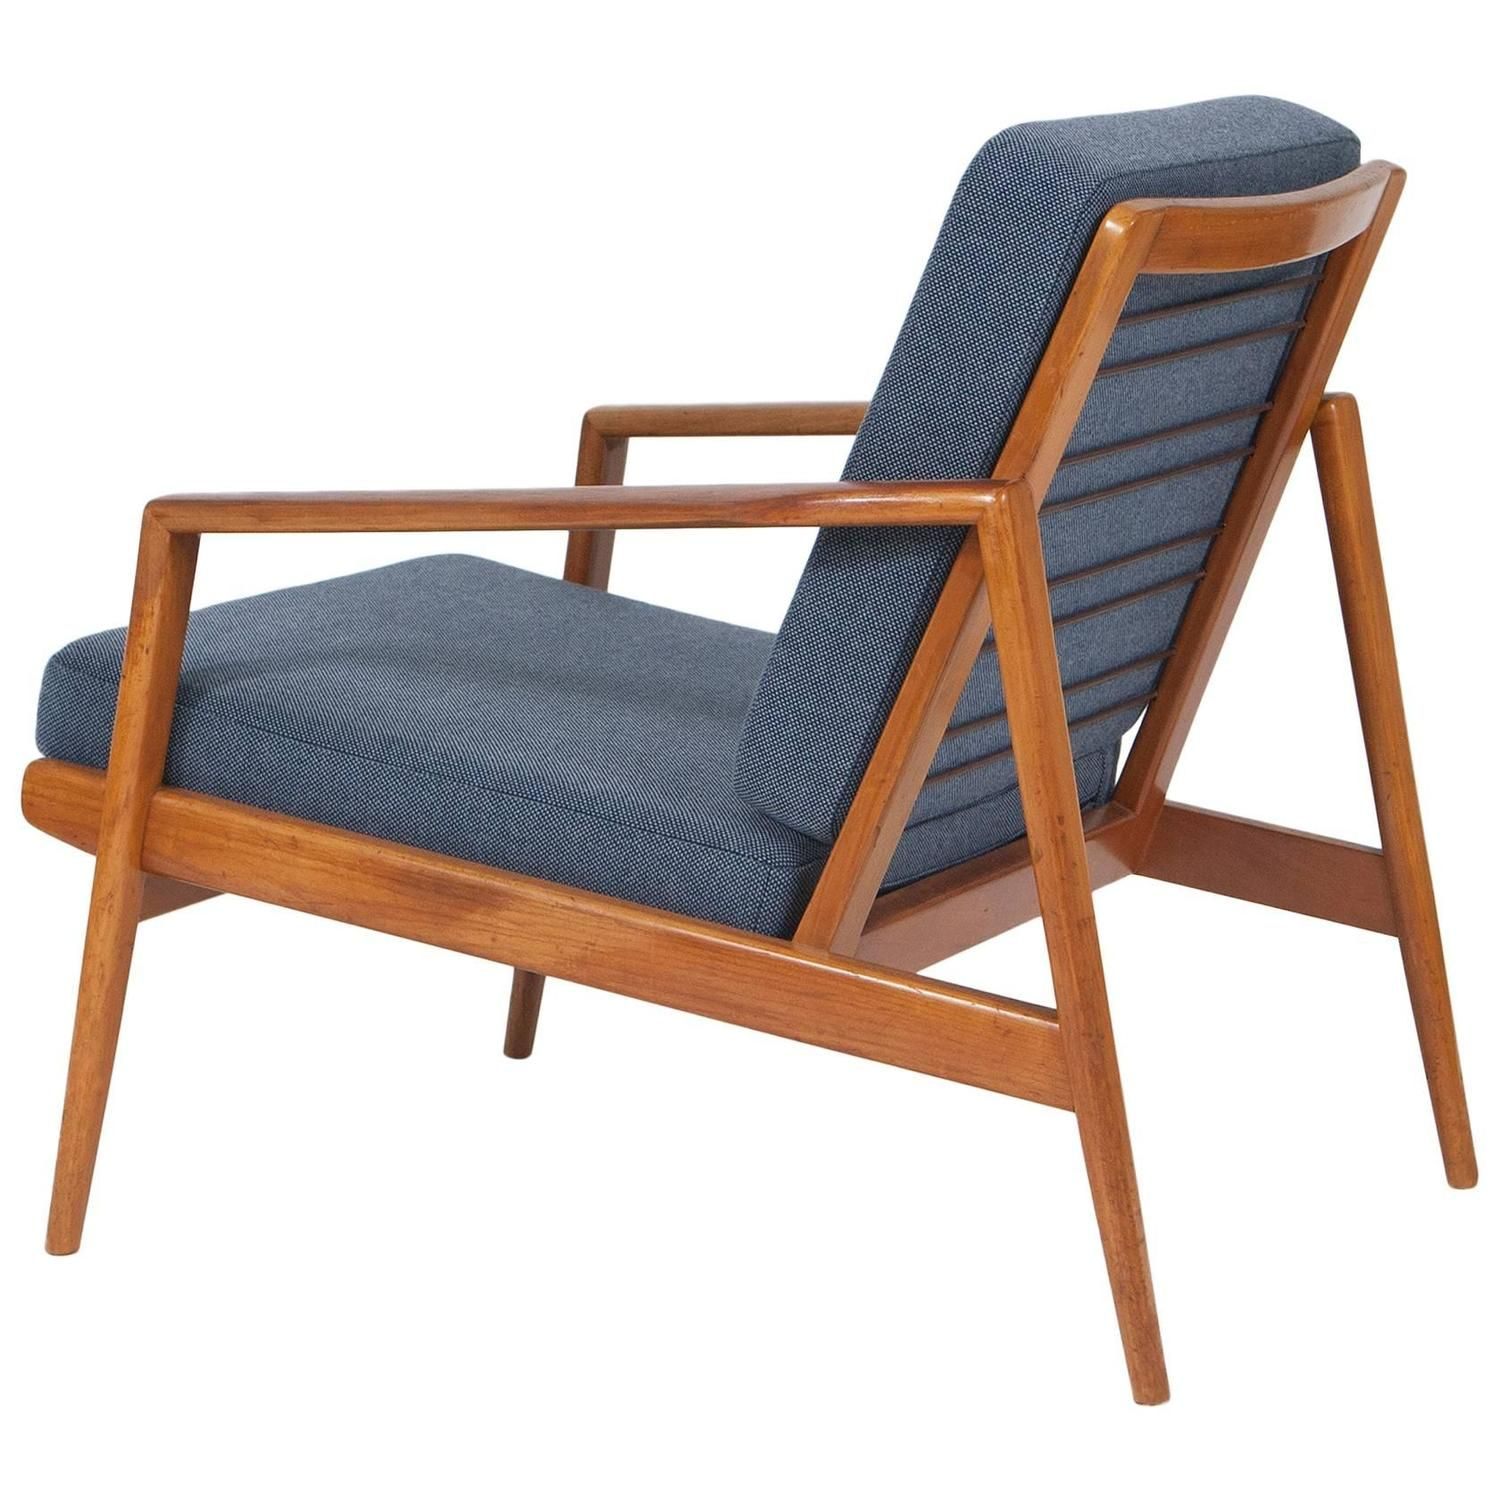 Teak Chair Scandinavian Mid Century Modern Design 1960s From A Unique Collection Of Ant Scandinavian Furniture Design Teak Chairs Scandinavian Lounge Chair